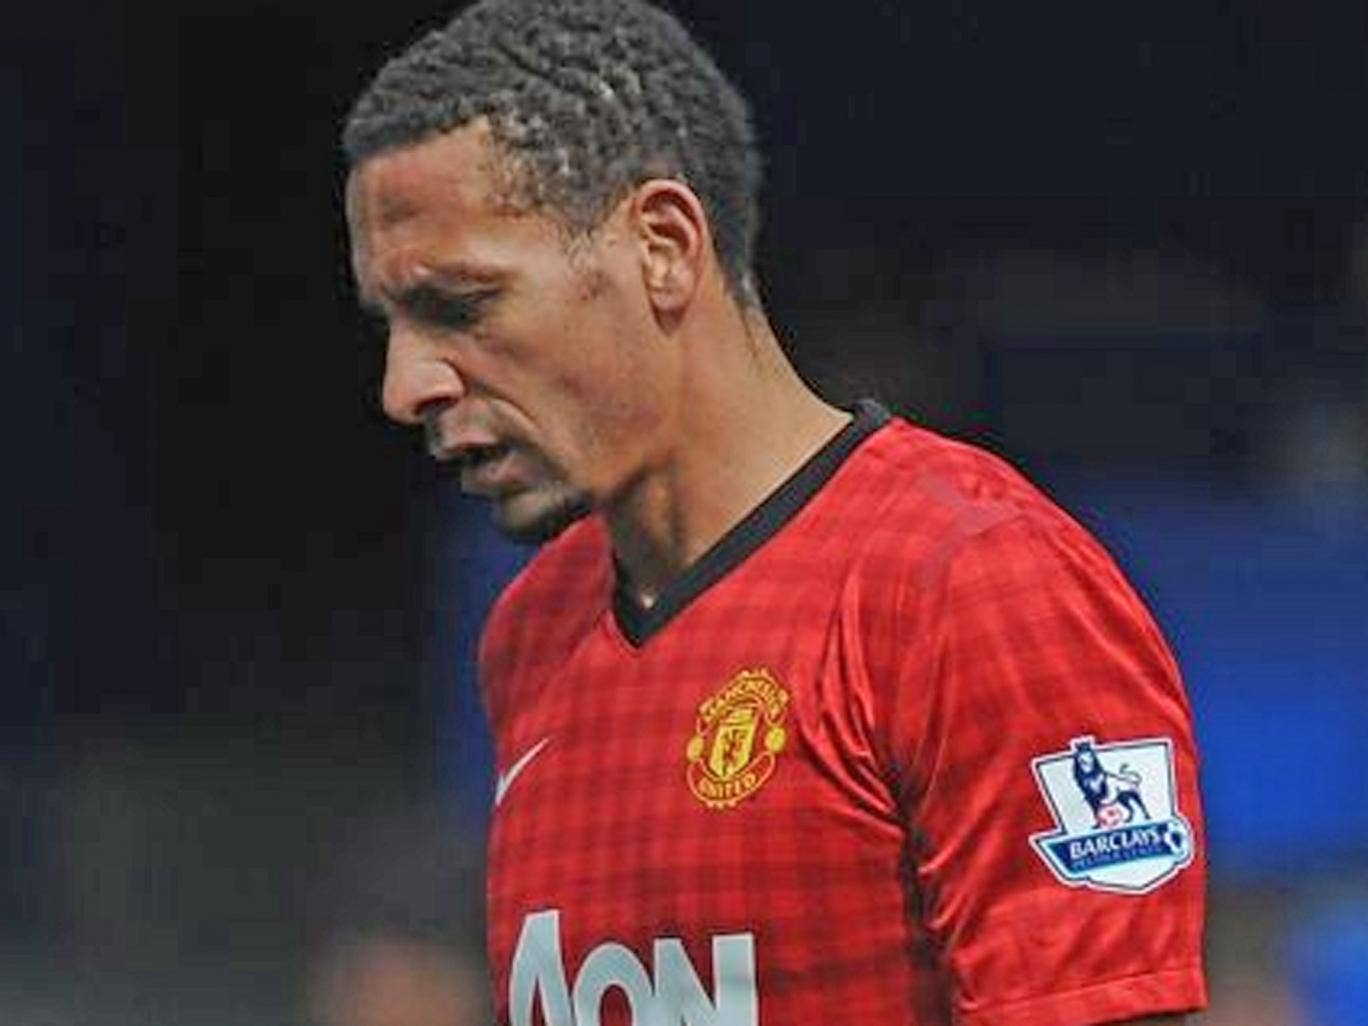 Rio Ferdinand gets a hard time from Chelsea supporters